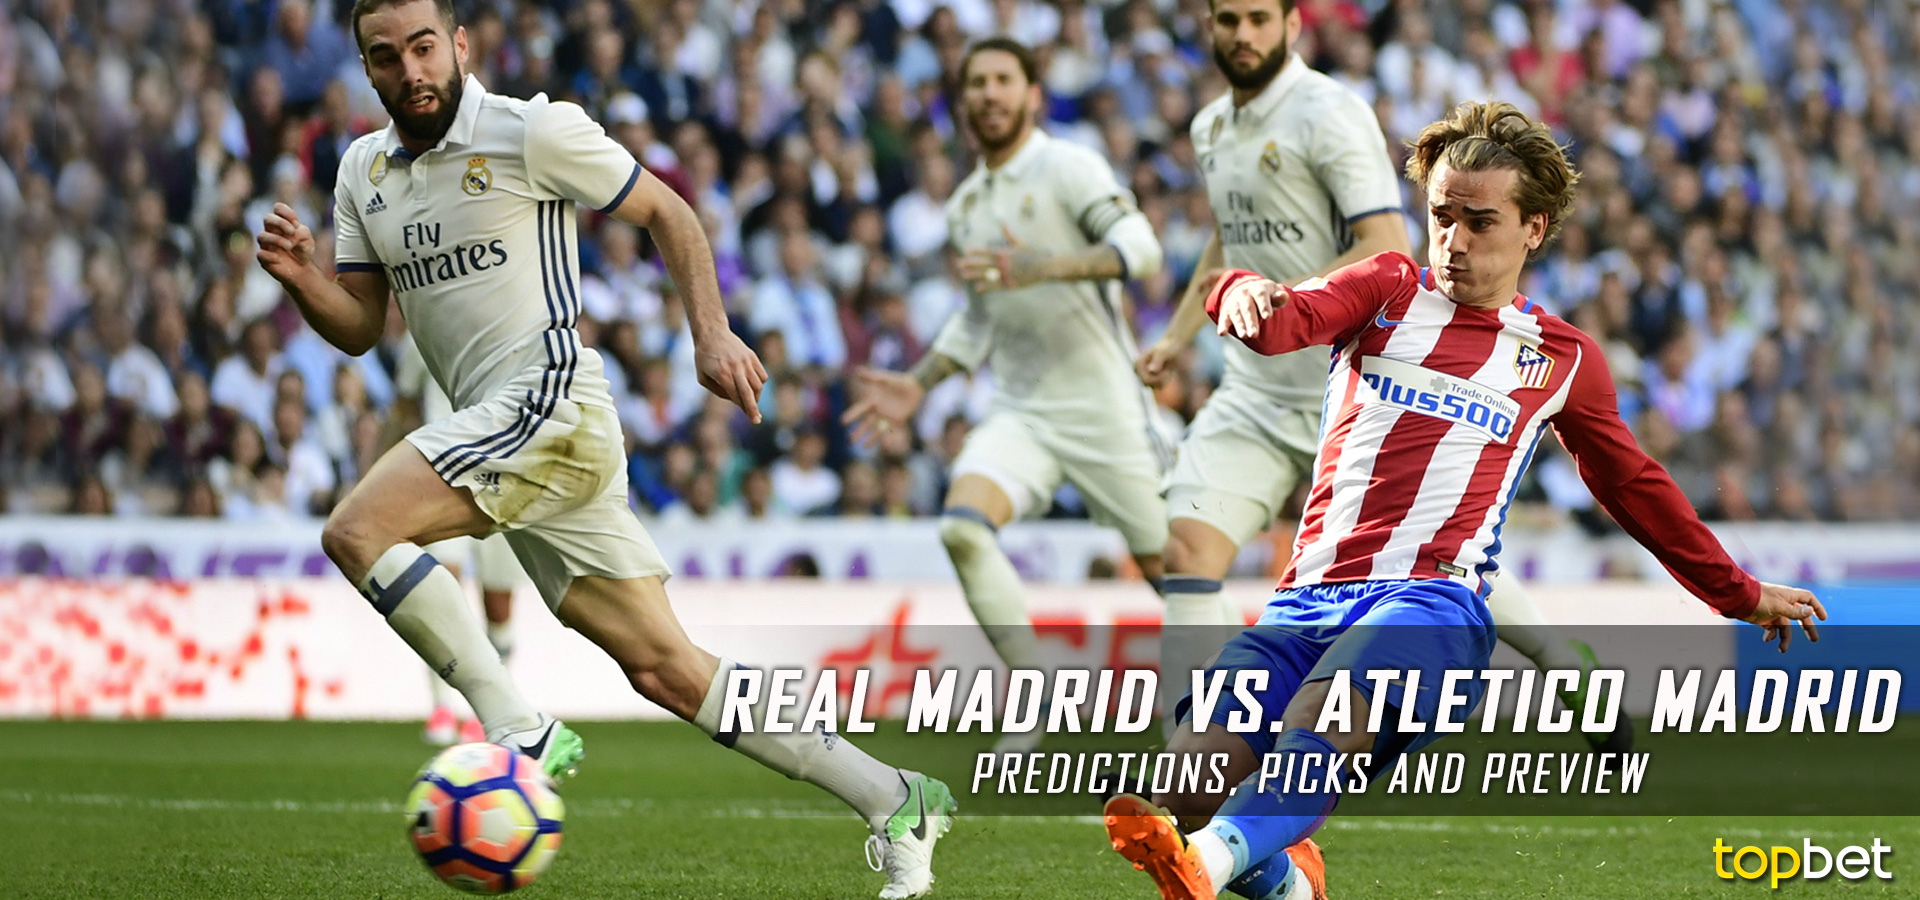 Real Madrid Vs Atletico Madrid: Real Madrid Vs Atletico Madrid Champions League 2017 Preview